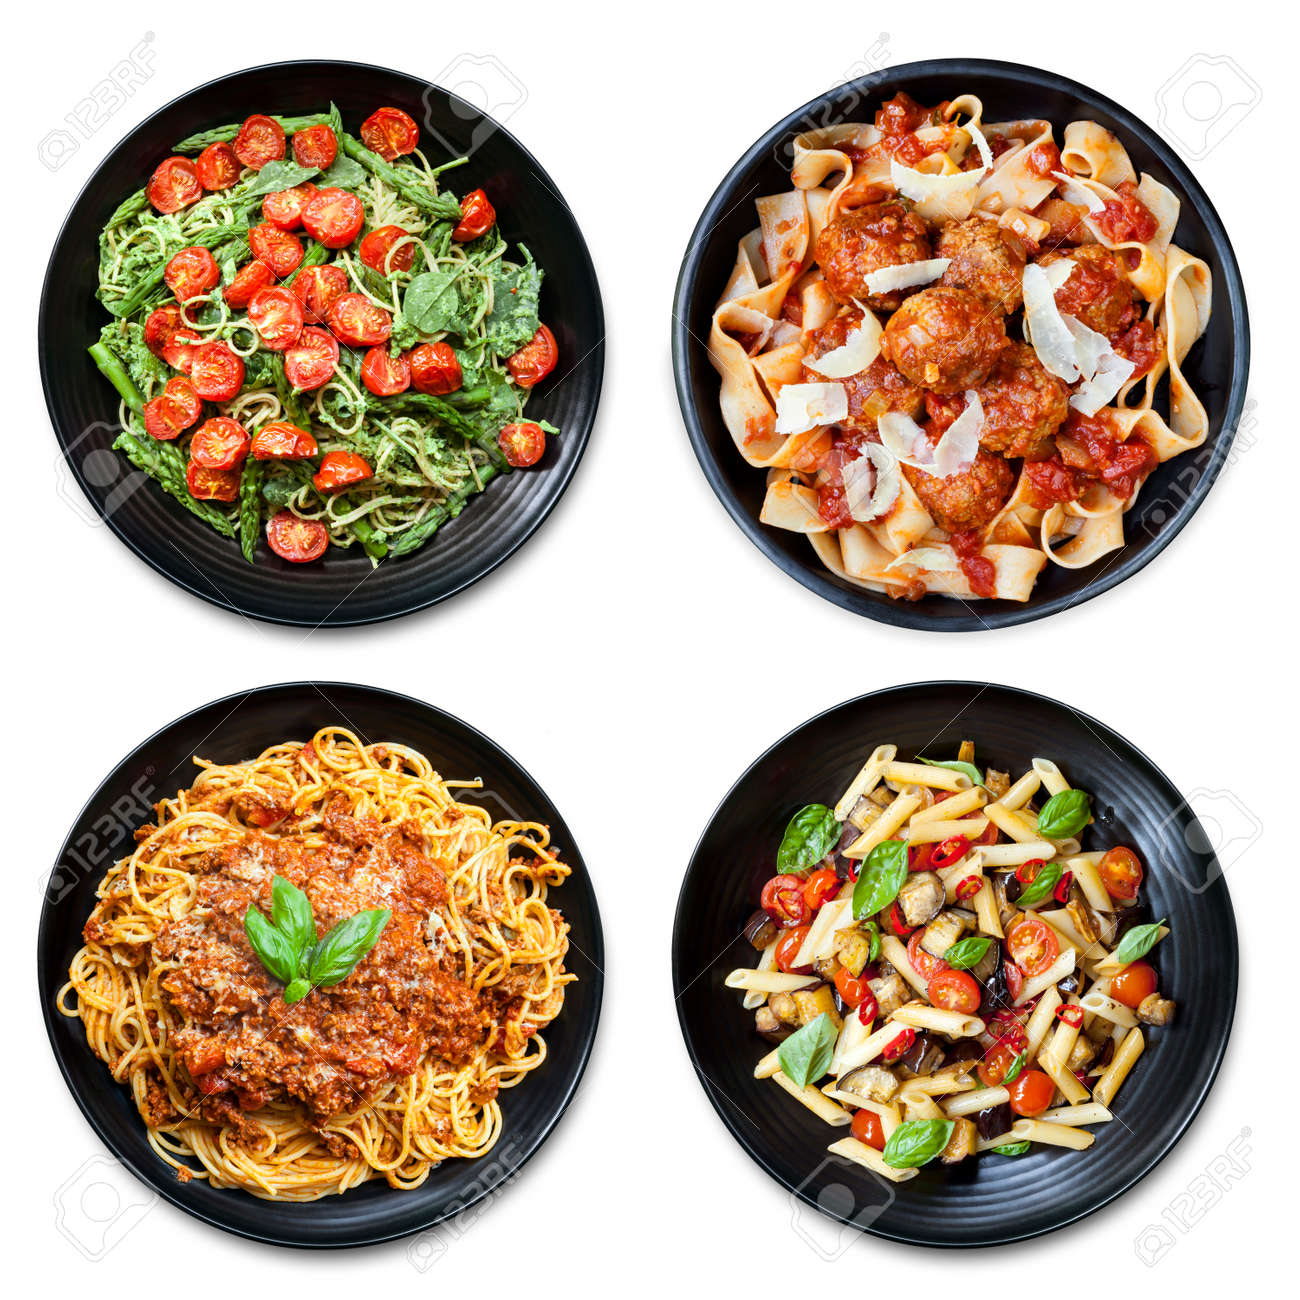 Pasta collage of meals on black plate, isolated on white. Overhead view. Includes spaghetti, fettucine, penne and ribbon. - 51812095